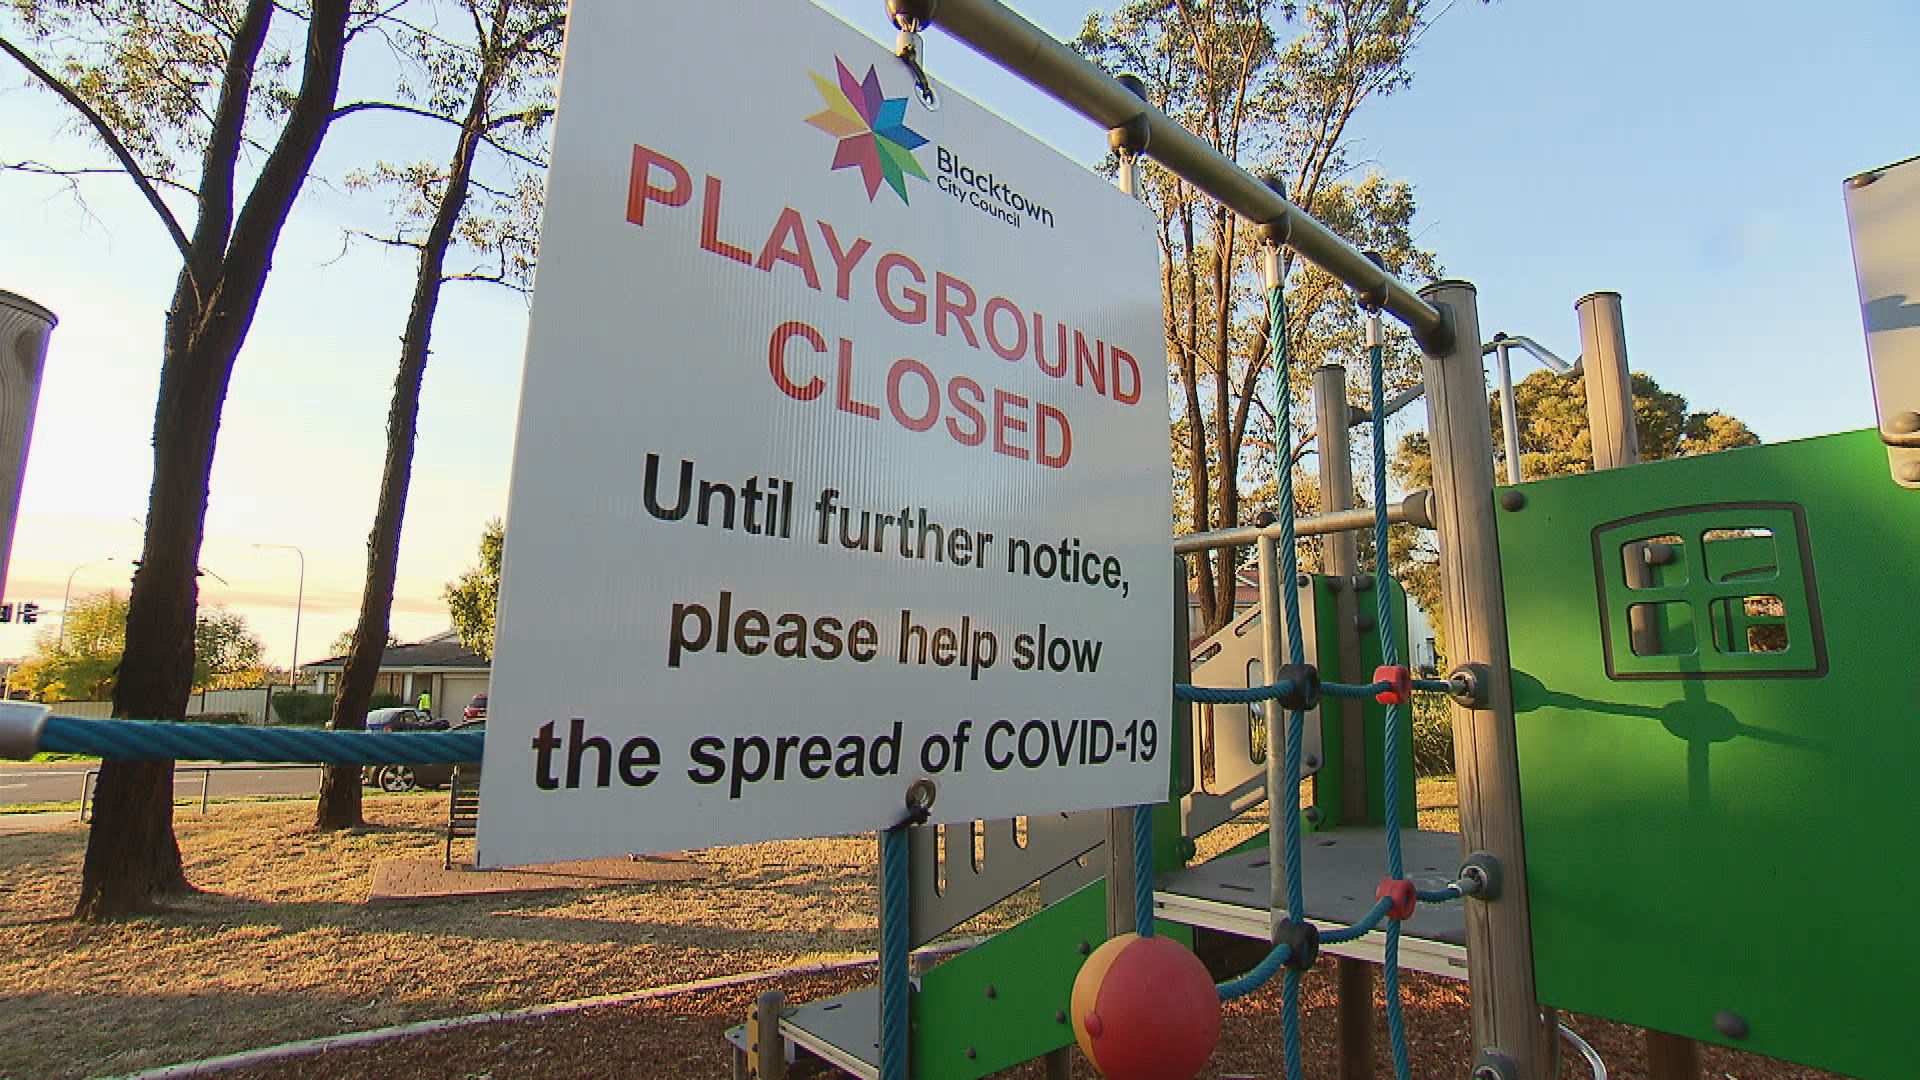 Blacktown City Council has closed all playground and gym equipment because people are misusing them under the strict COVID-19 restrictions.